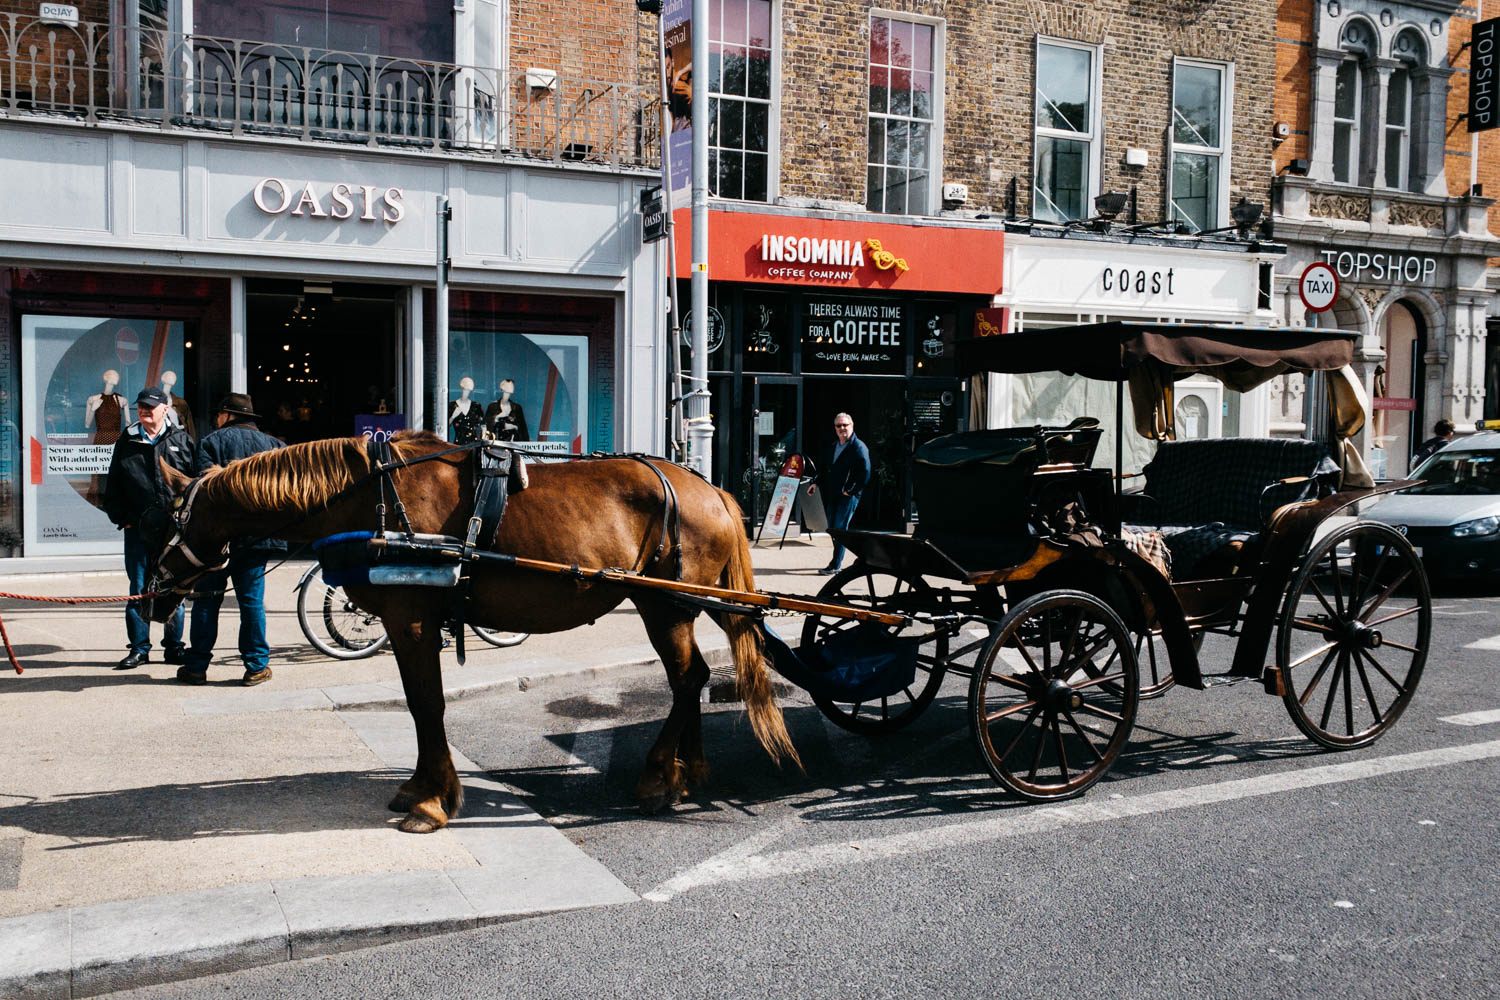 Horse and Cart in Dublin City - Street Photograpy on an iPhone X